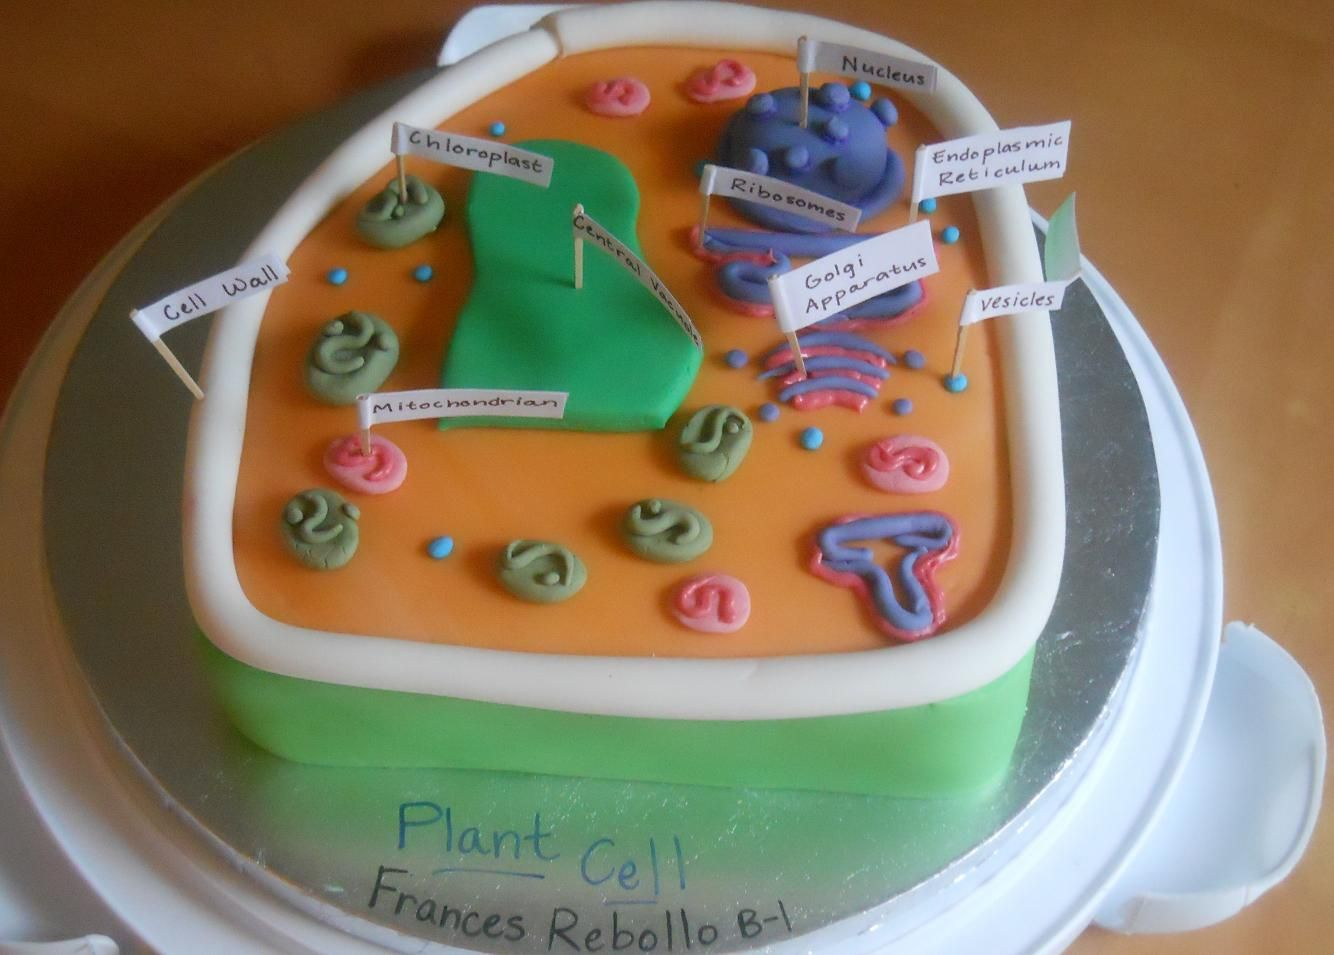 Plant cell model project cake